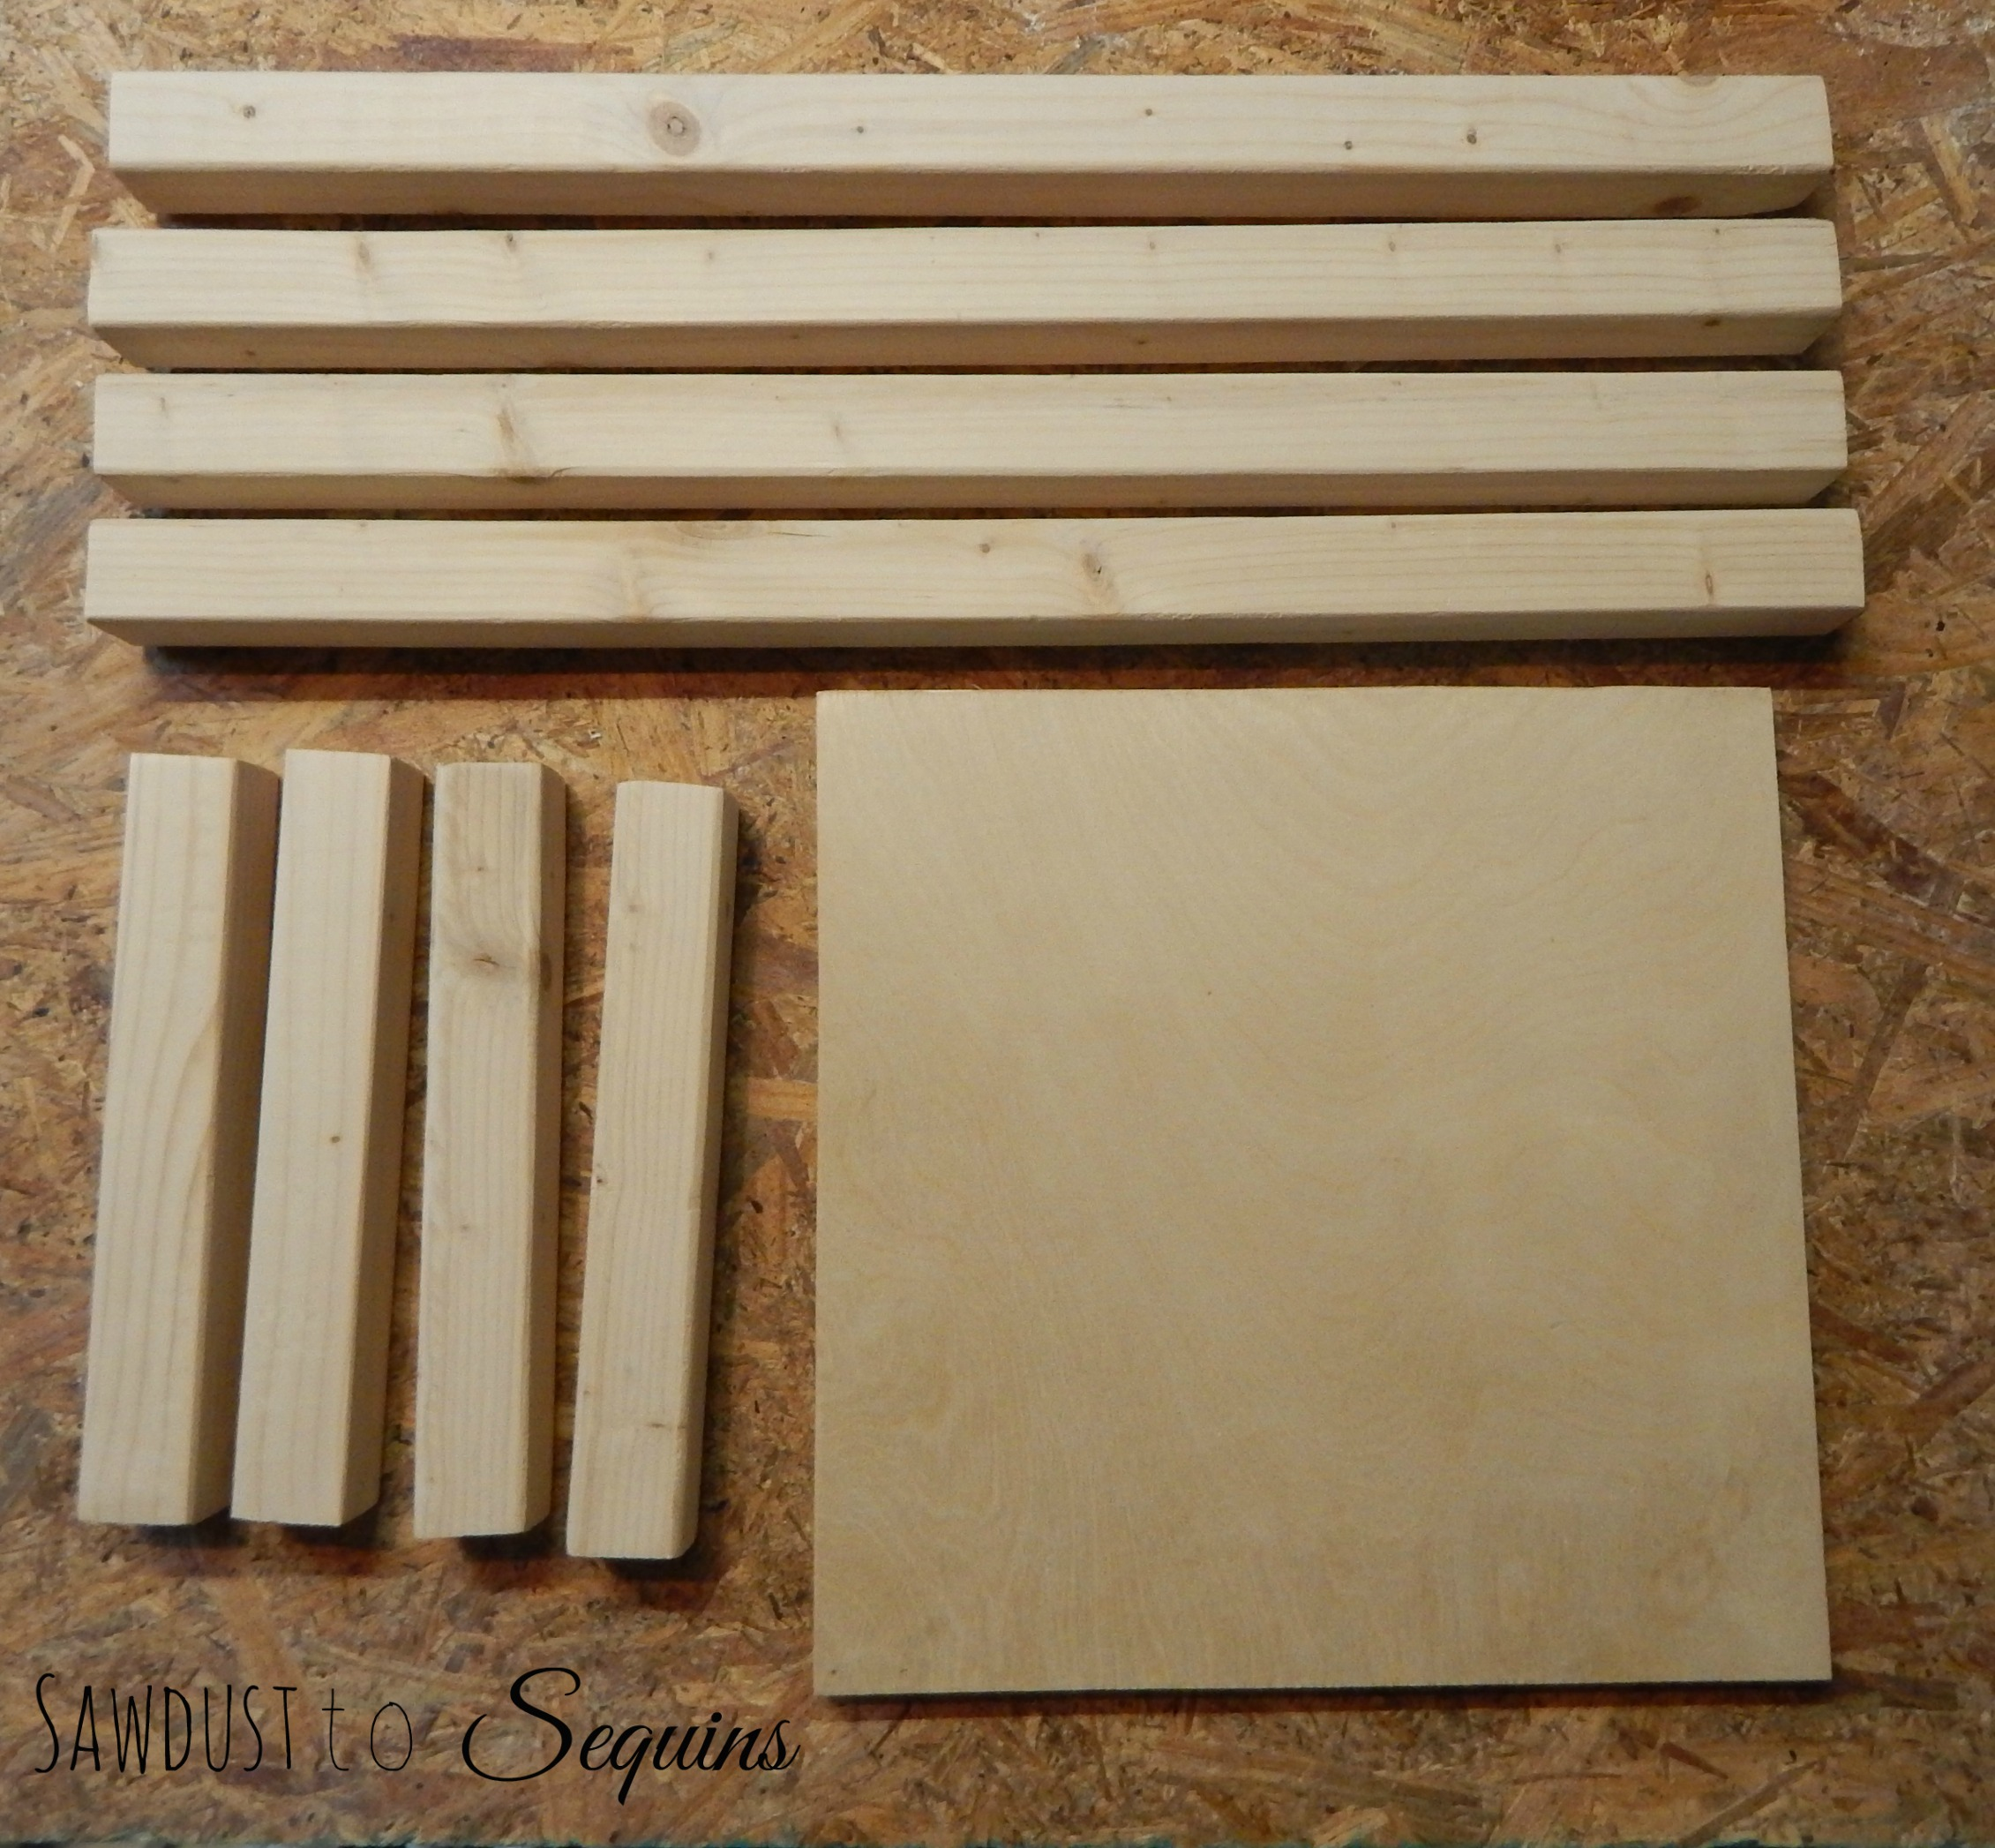 Tiled End Table Boards